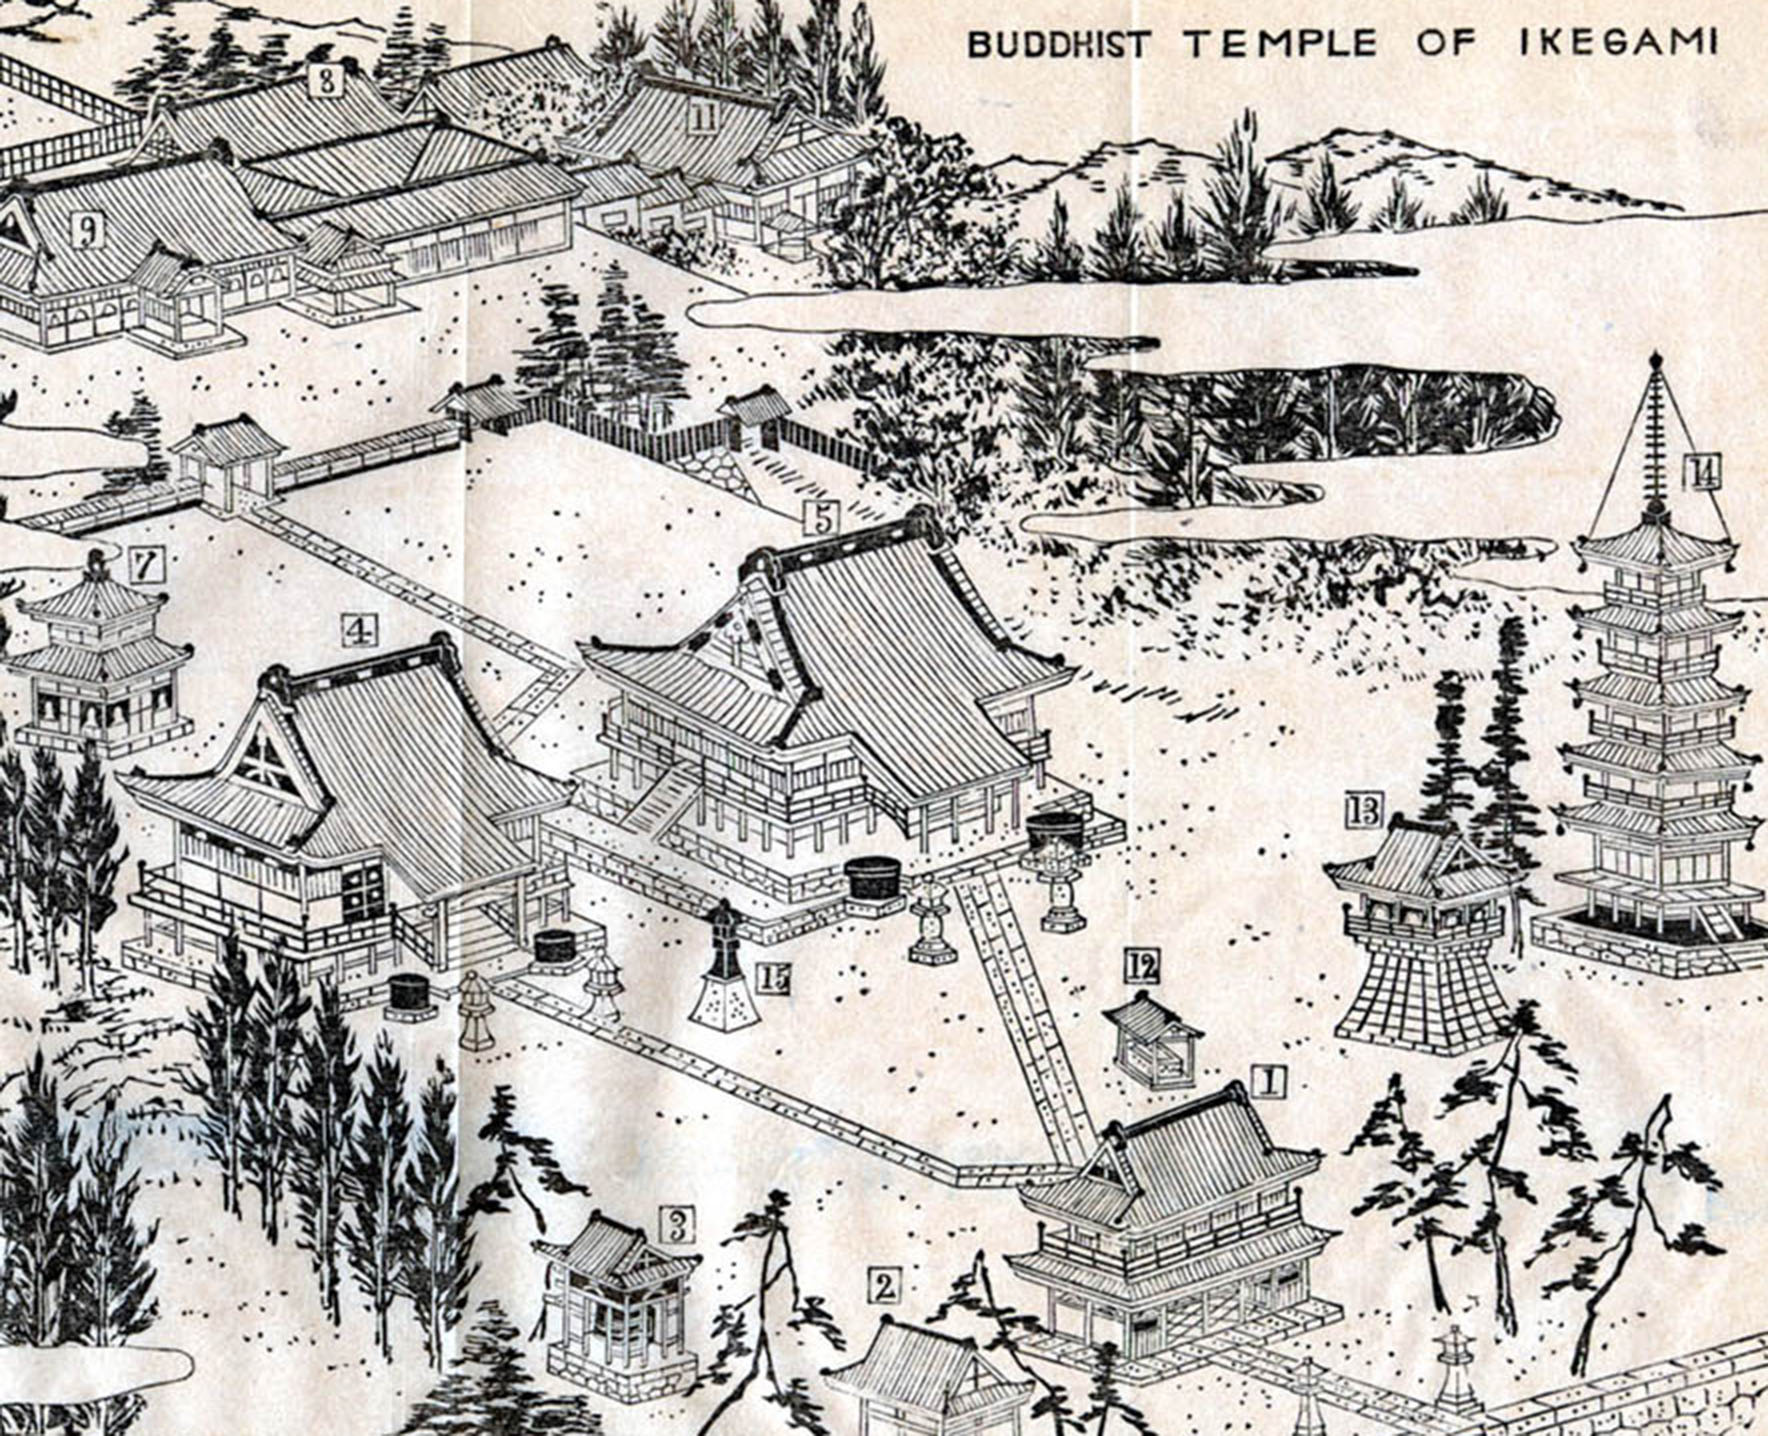 Monochromatic drawing of Buddhist temple of Ikegami, e-Asia Digital Library